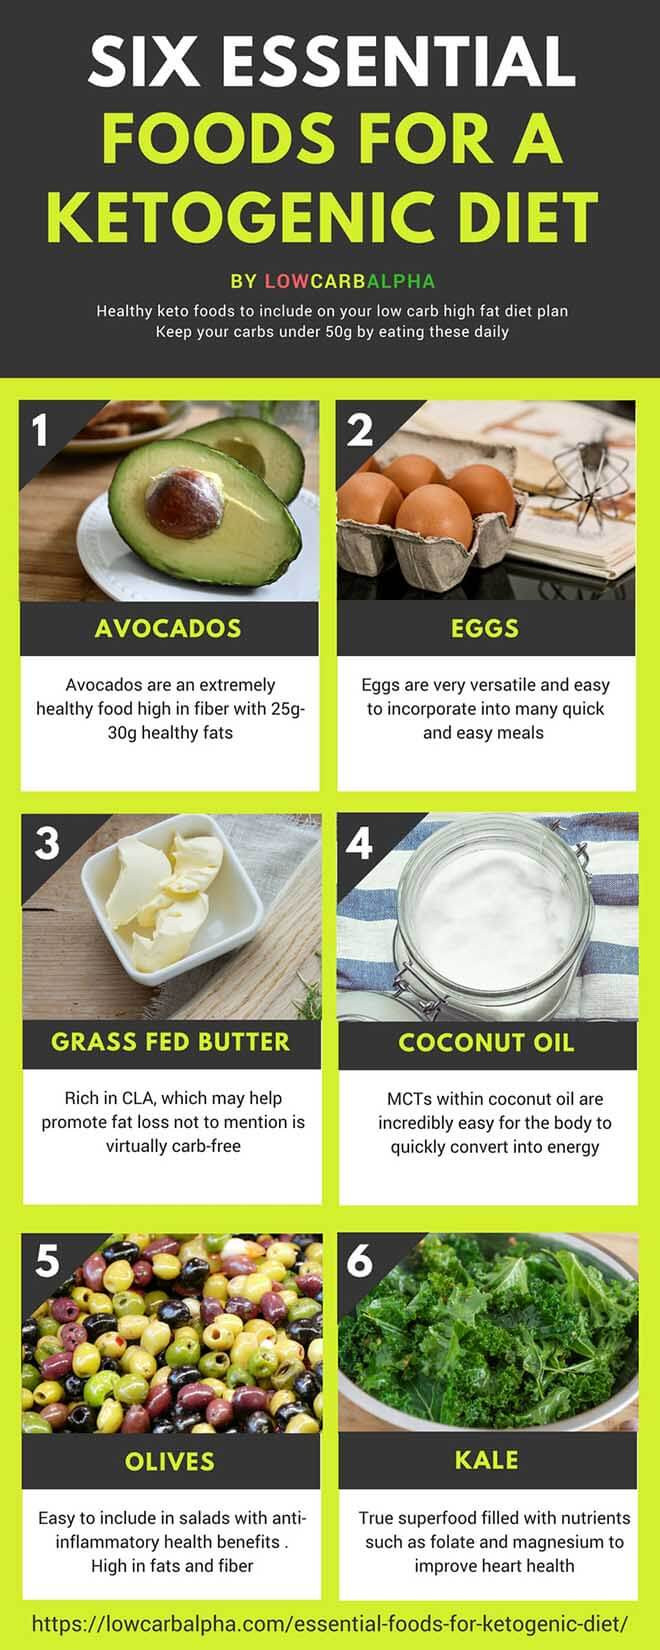 Keto Diet Fat Foods  Six essential foods for a Ketogenic Diet to Nurture your Body